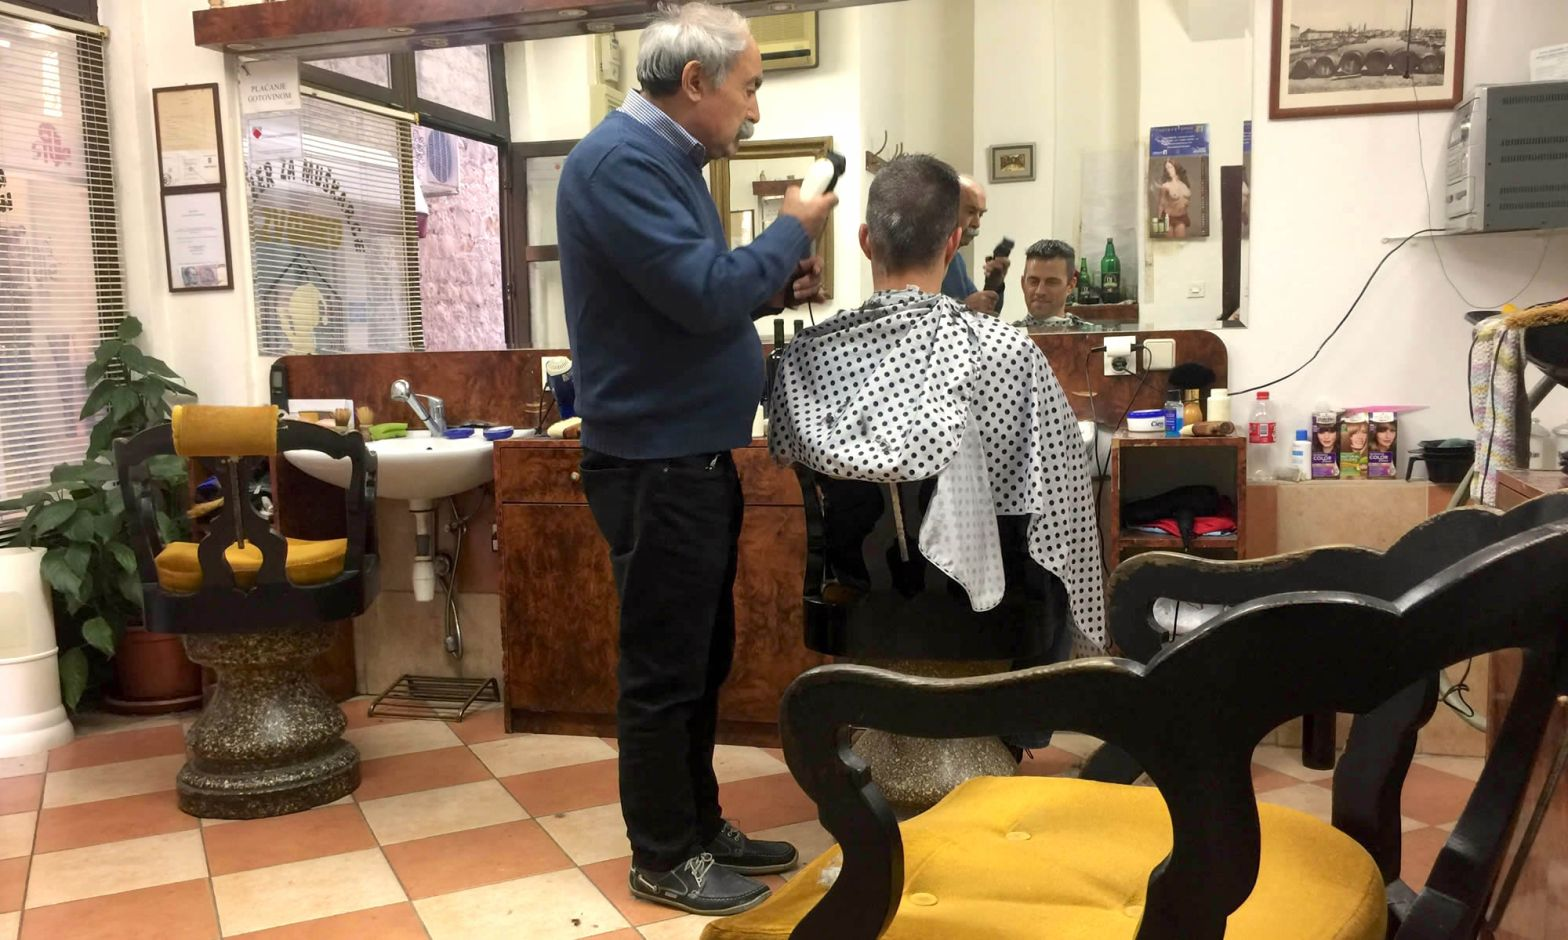 A man cuts a customer's hair at a barber shop in Split Croatia